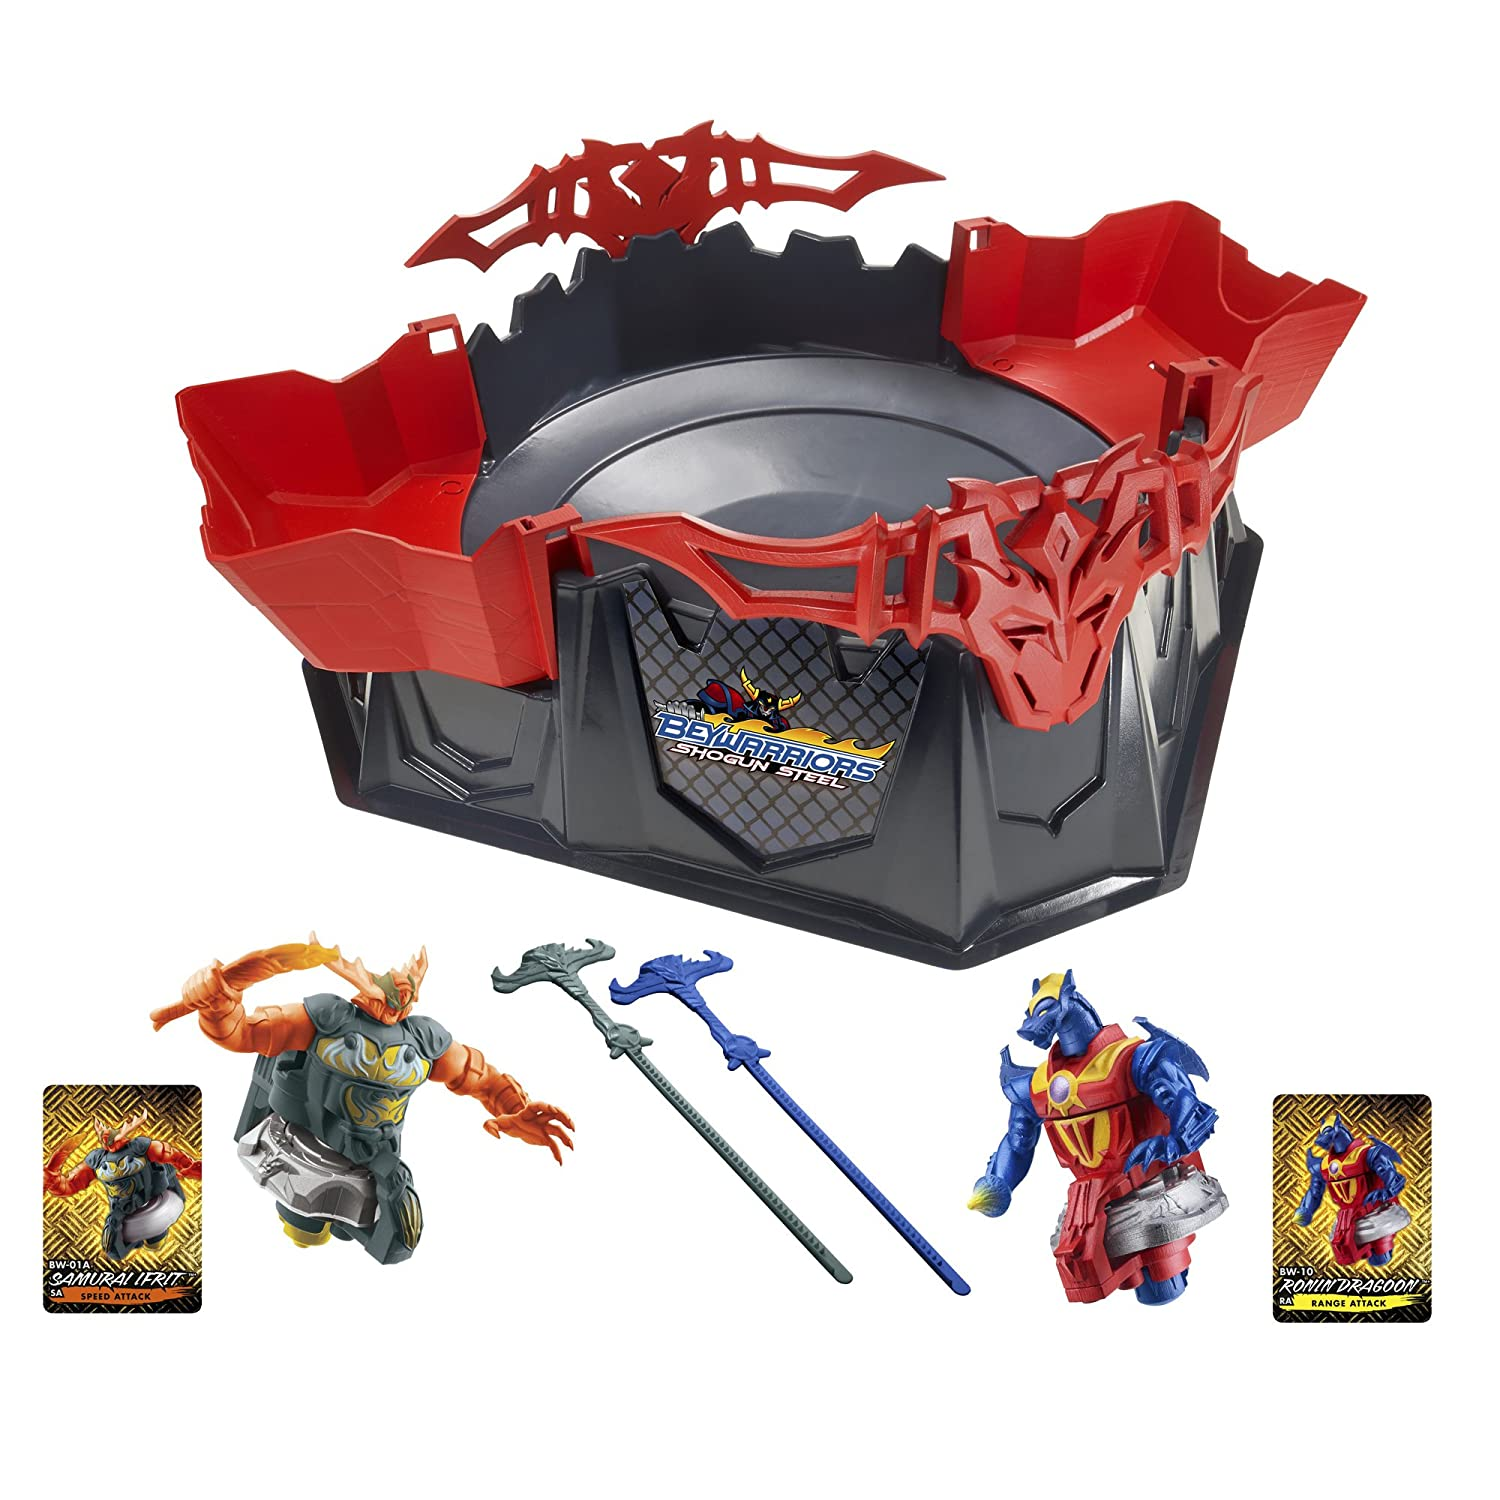 Top 10 Best Beyblade Toys in the World 2020 - Buyer's Guide 5